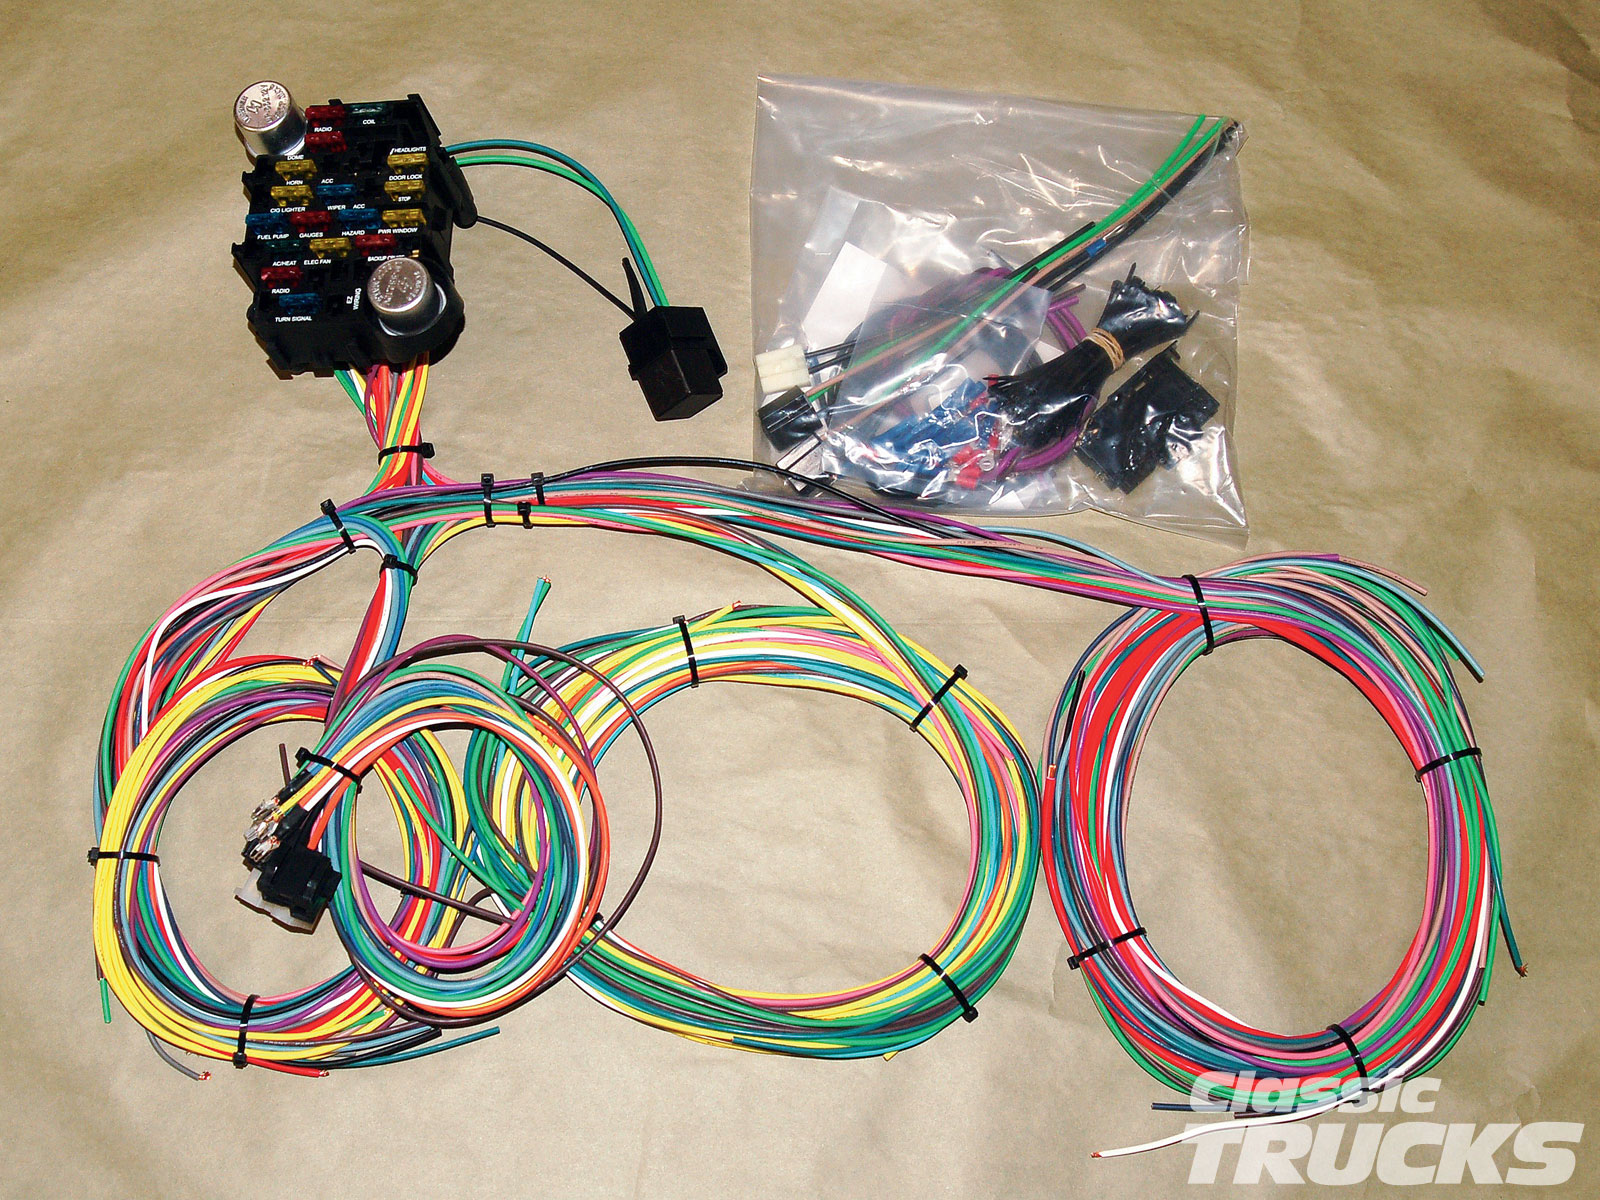 1010clt 02 o aftermarket wiring harness install kit?resize\\\=665%2C499 painless wiring harness australia tamahuproject org universal wiring harness australia at webbmarketing.co